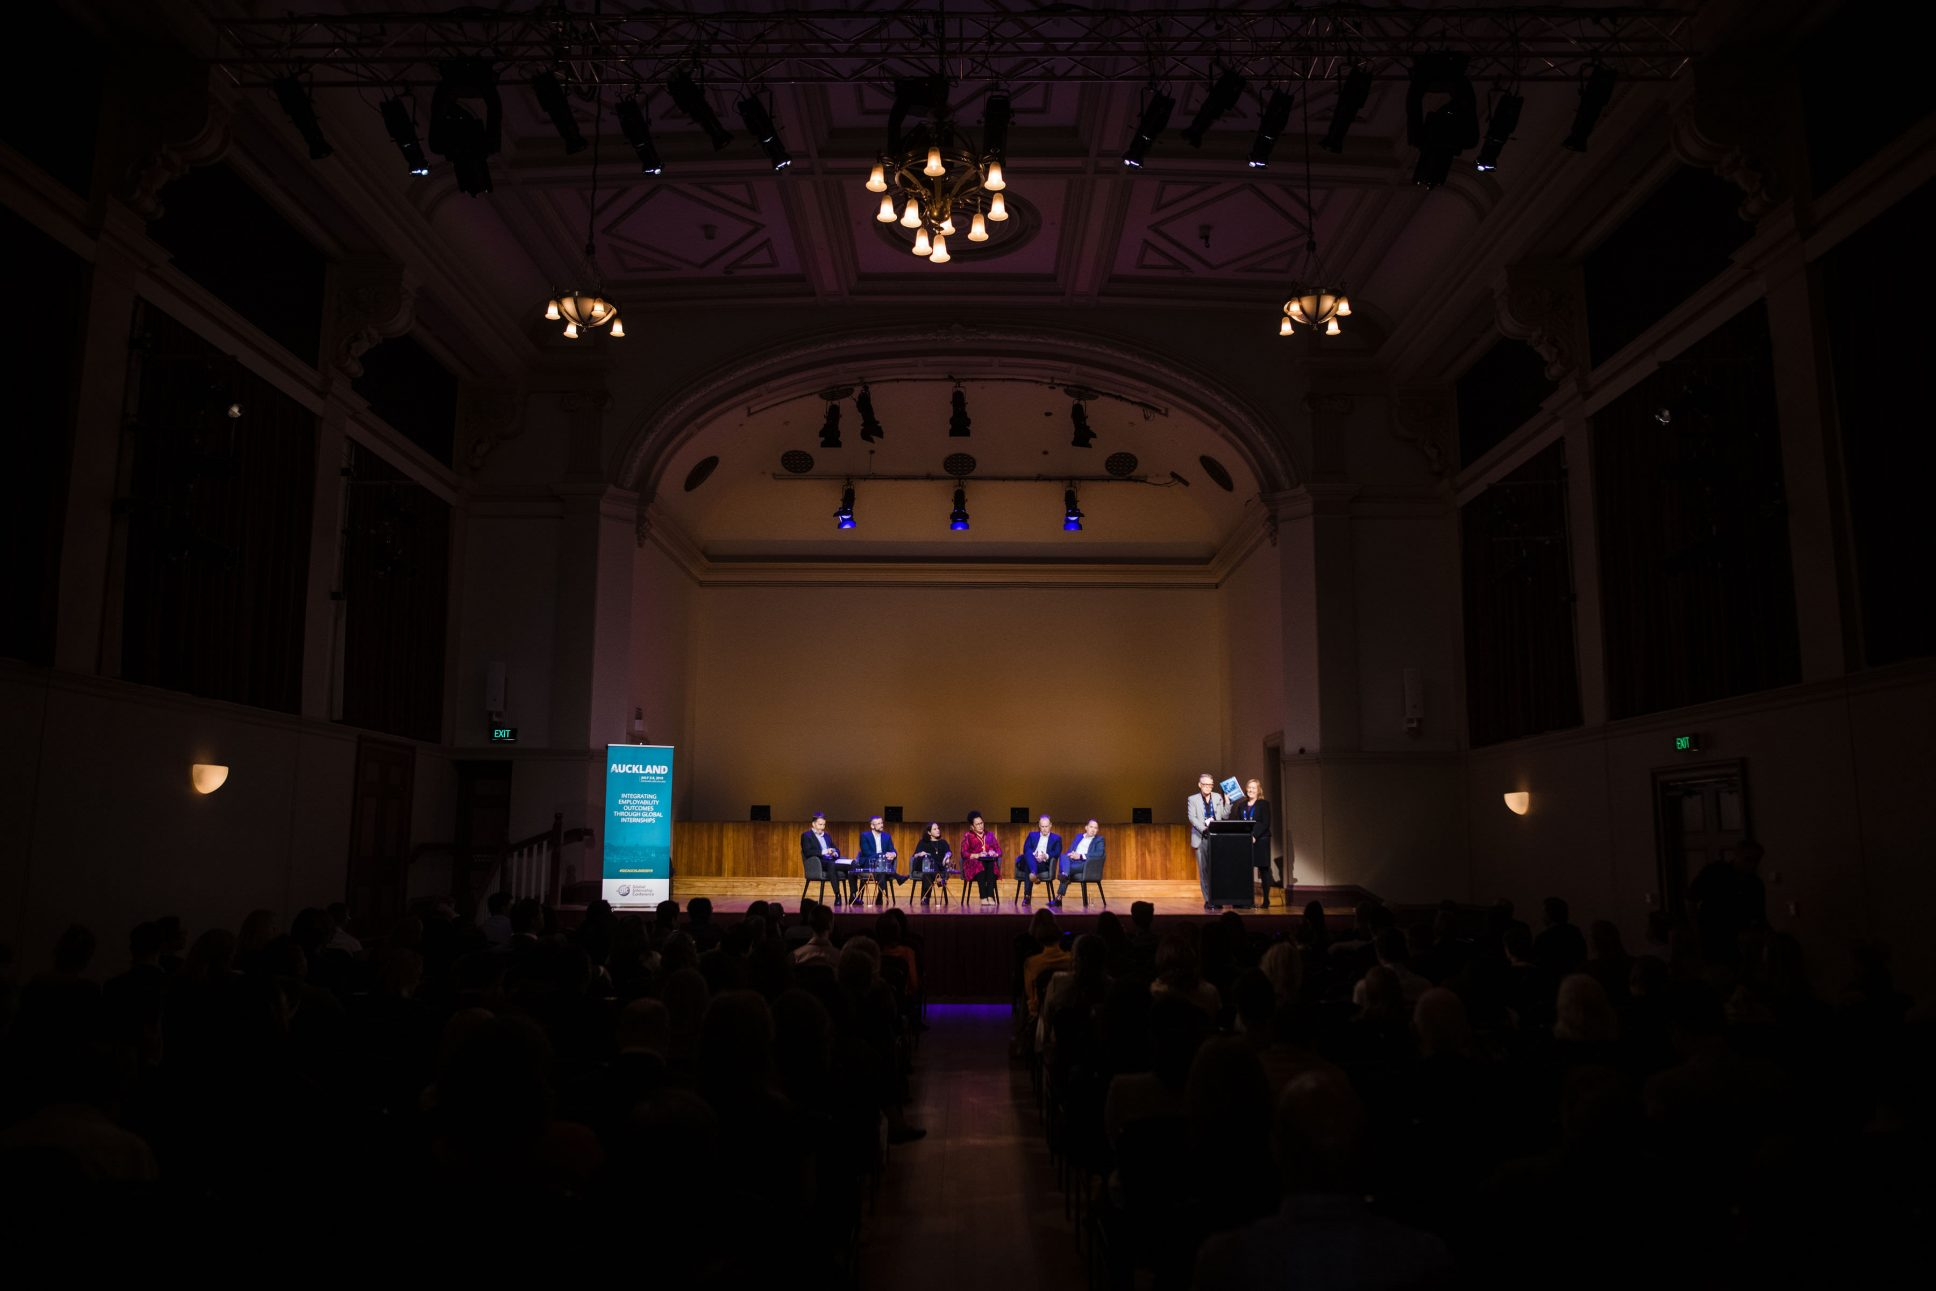 Auckland Town Hall hosting an event